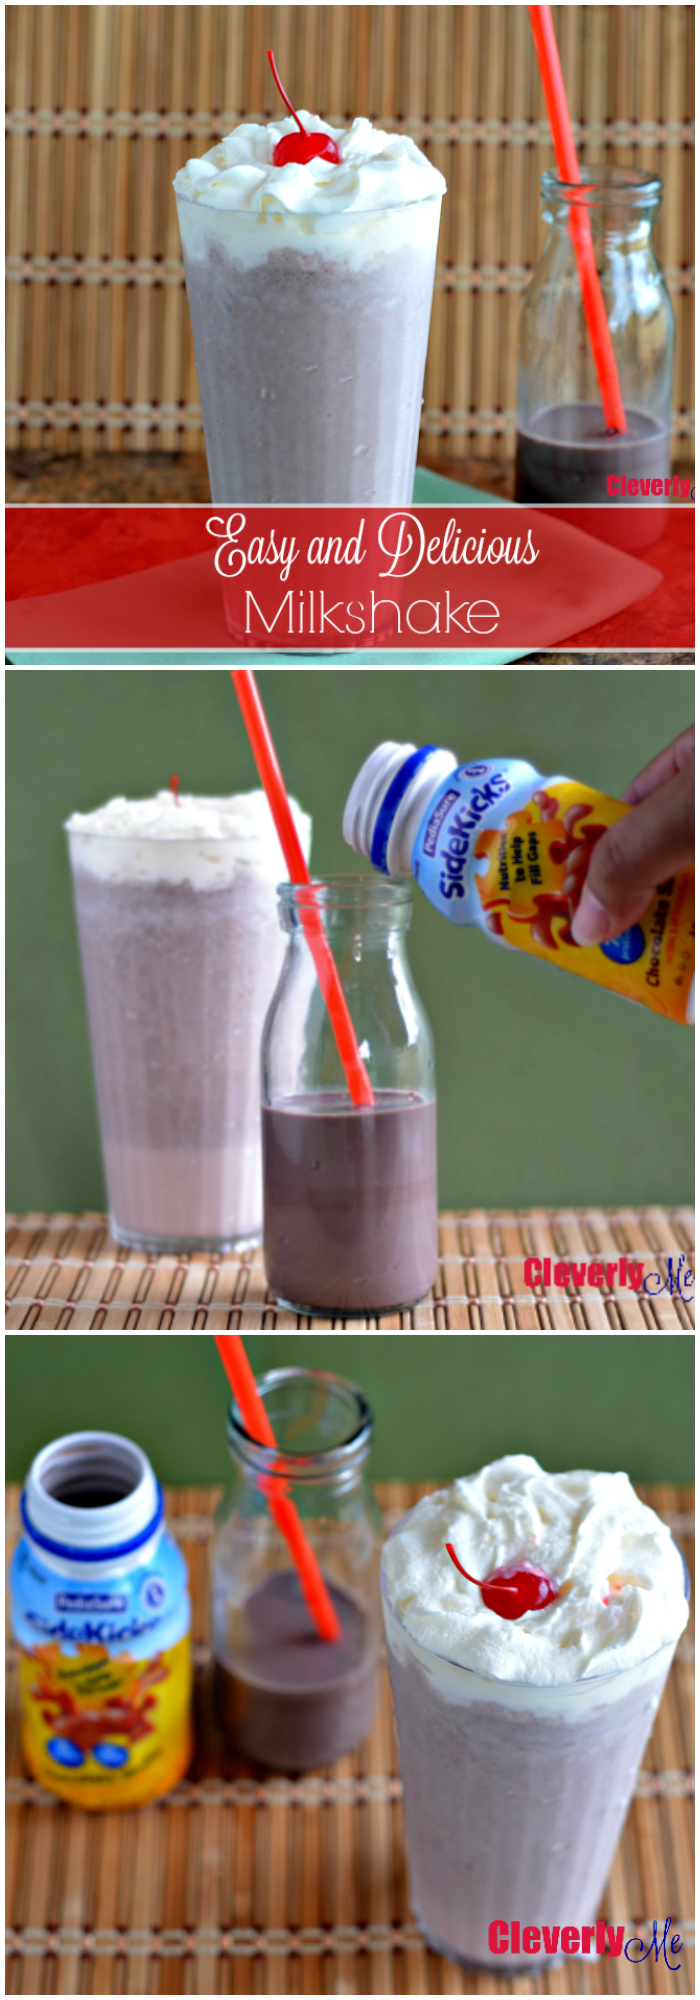 Enjoy this chocolatey milkshake that can be made in under 10 minutes with only 3 ingredients. Get this Easy and Delicious Milkshare recipe at CleverlyMe.com